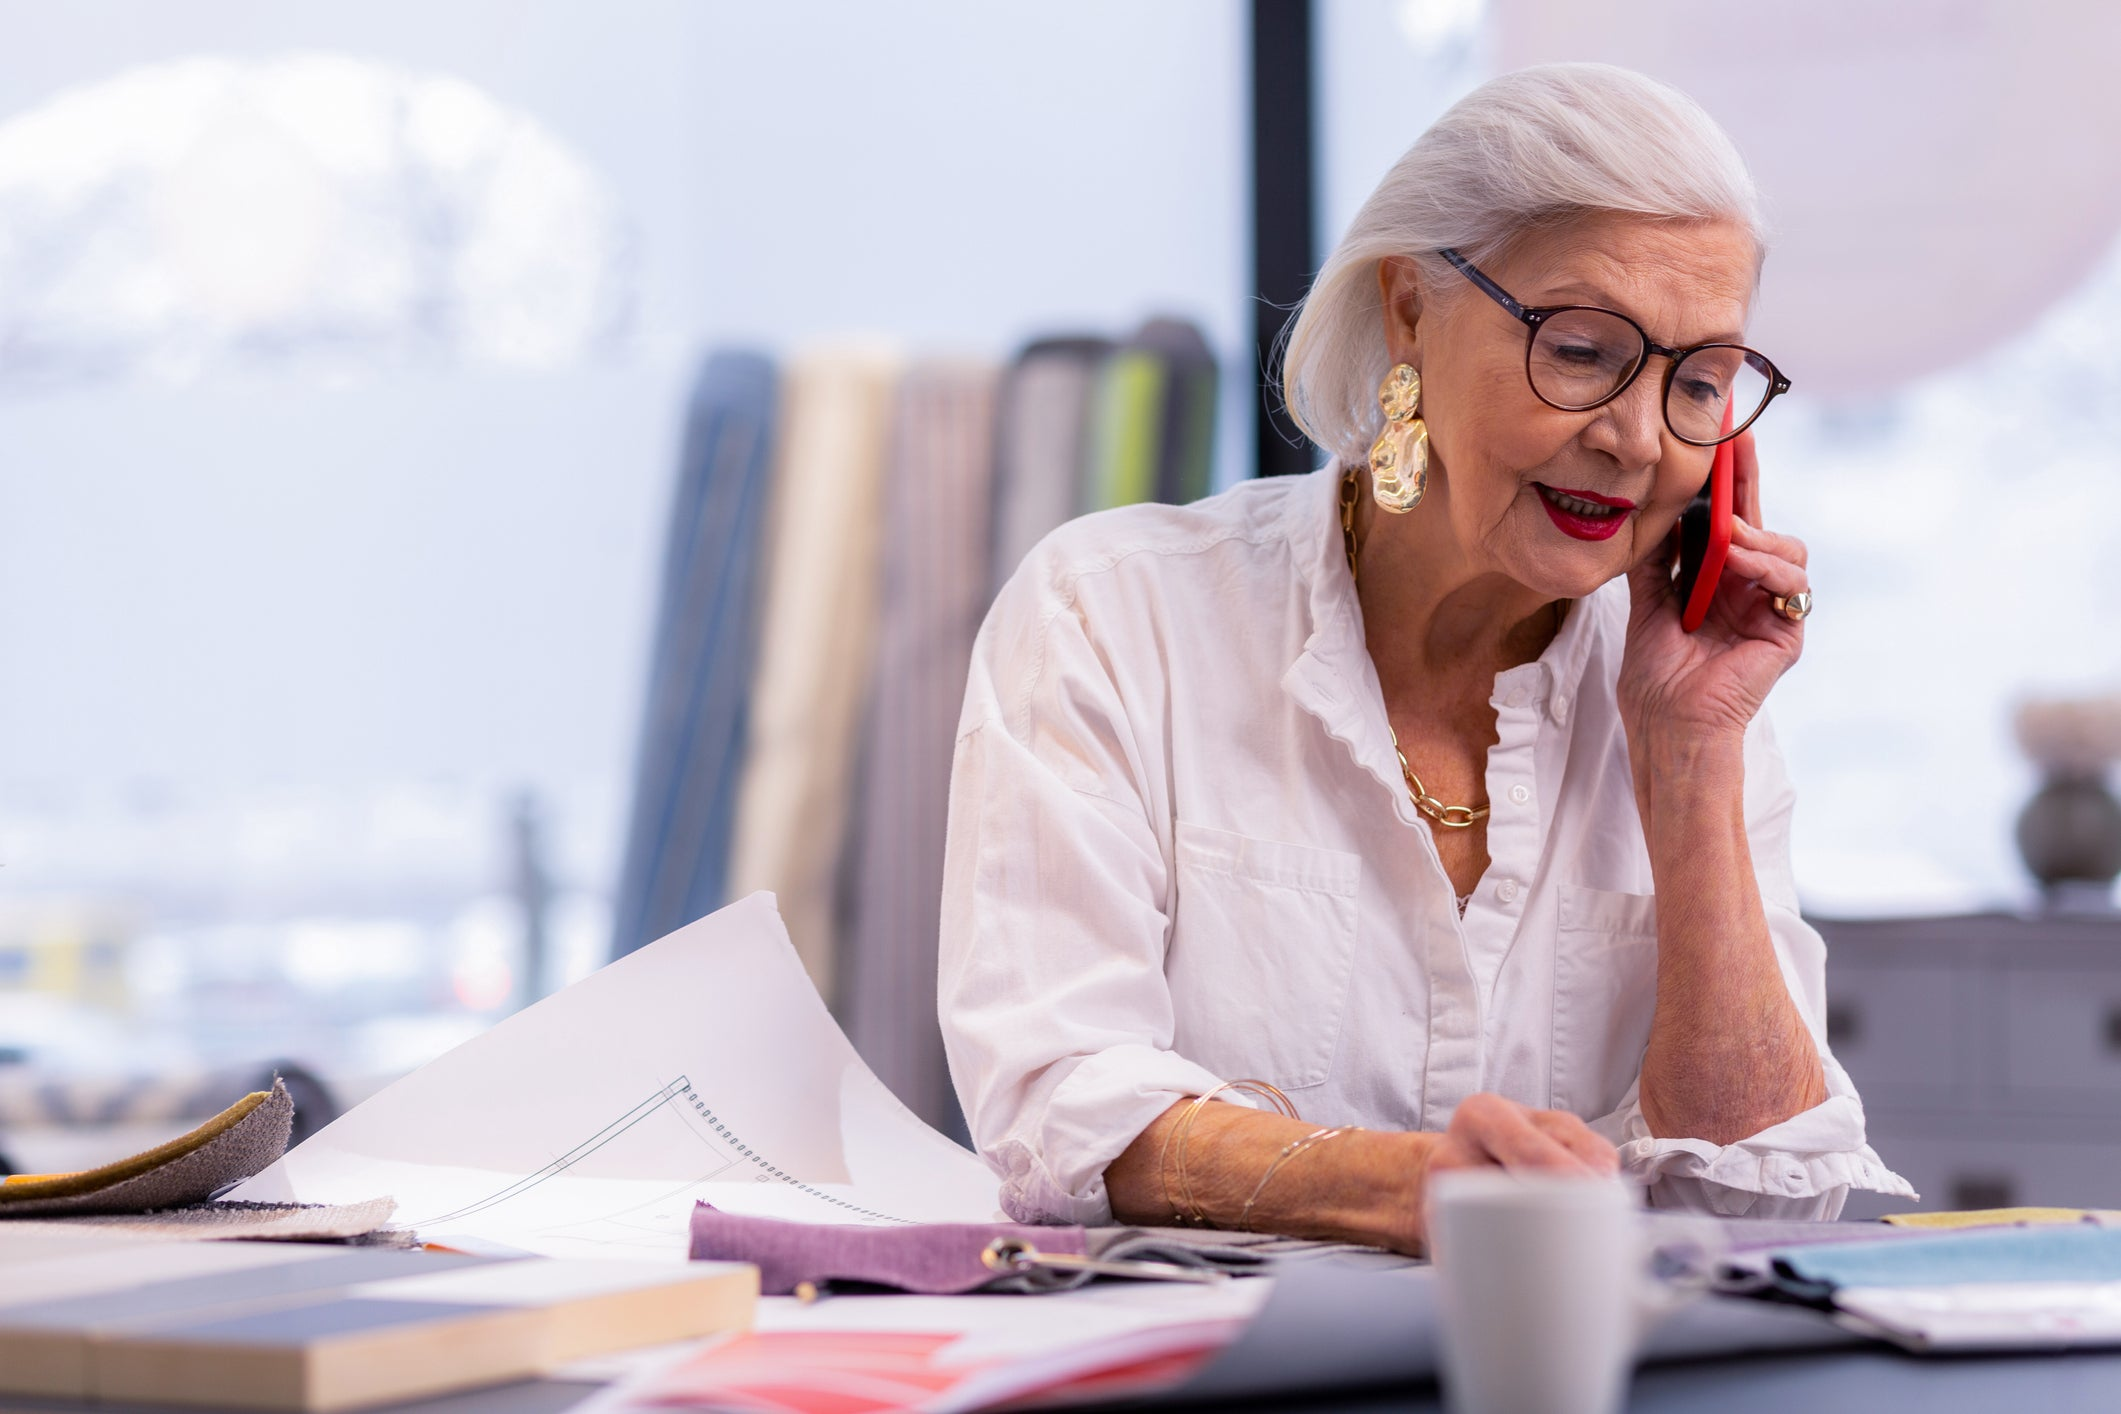 3 Pros and 3 Cons of Working in Retirement